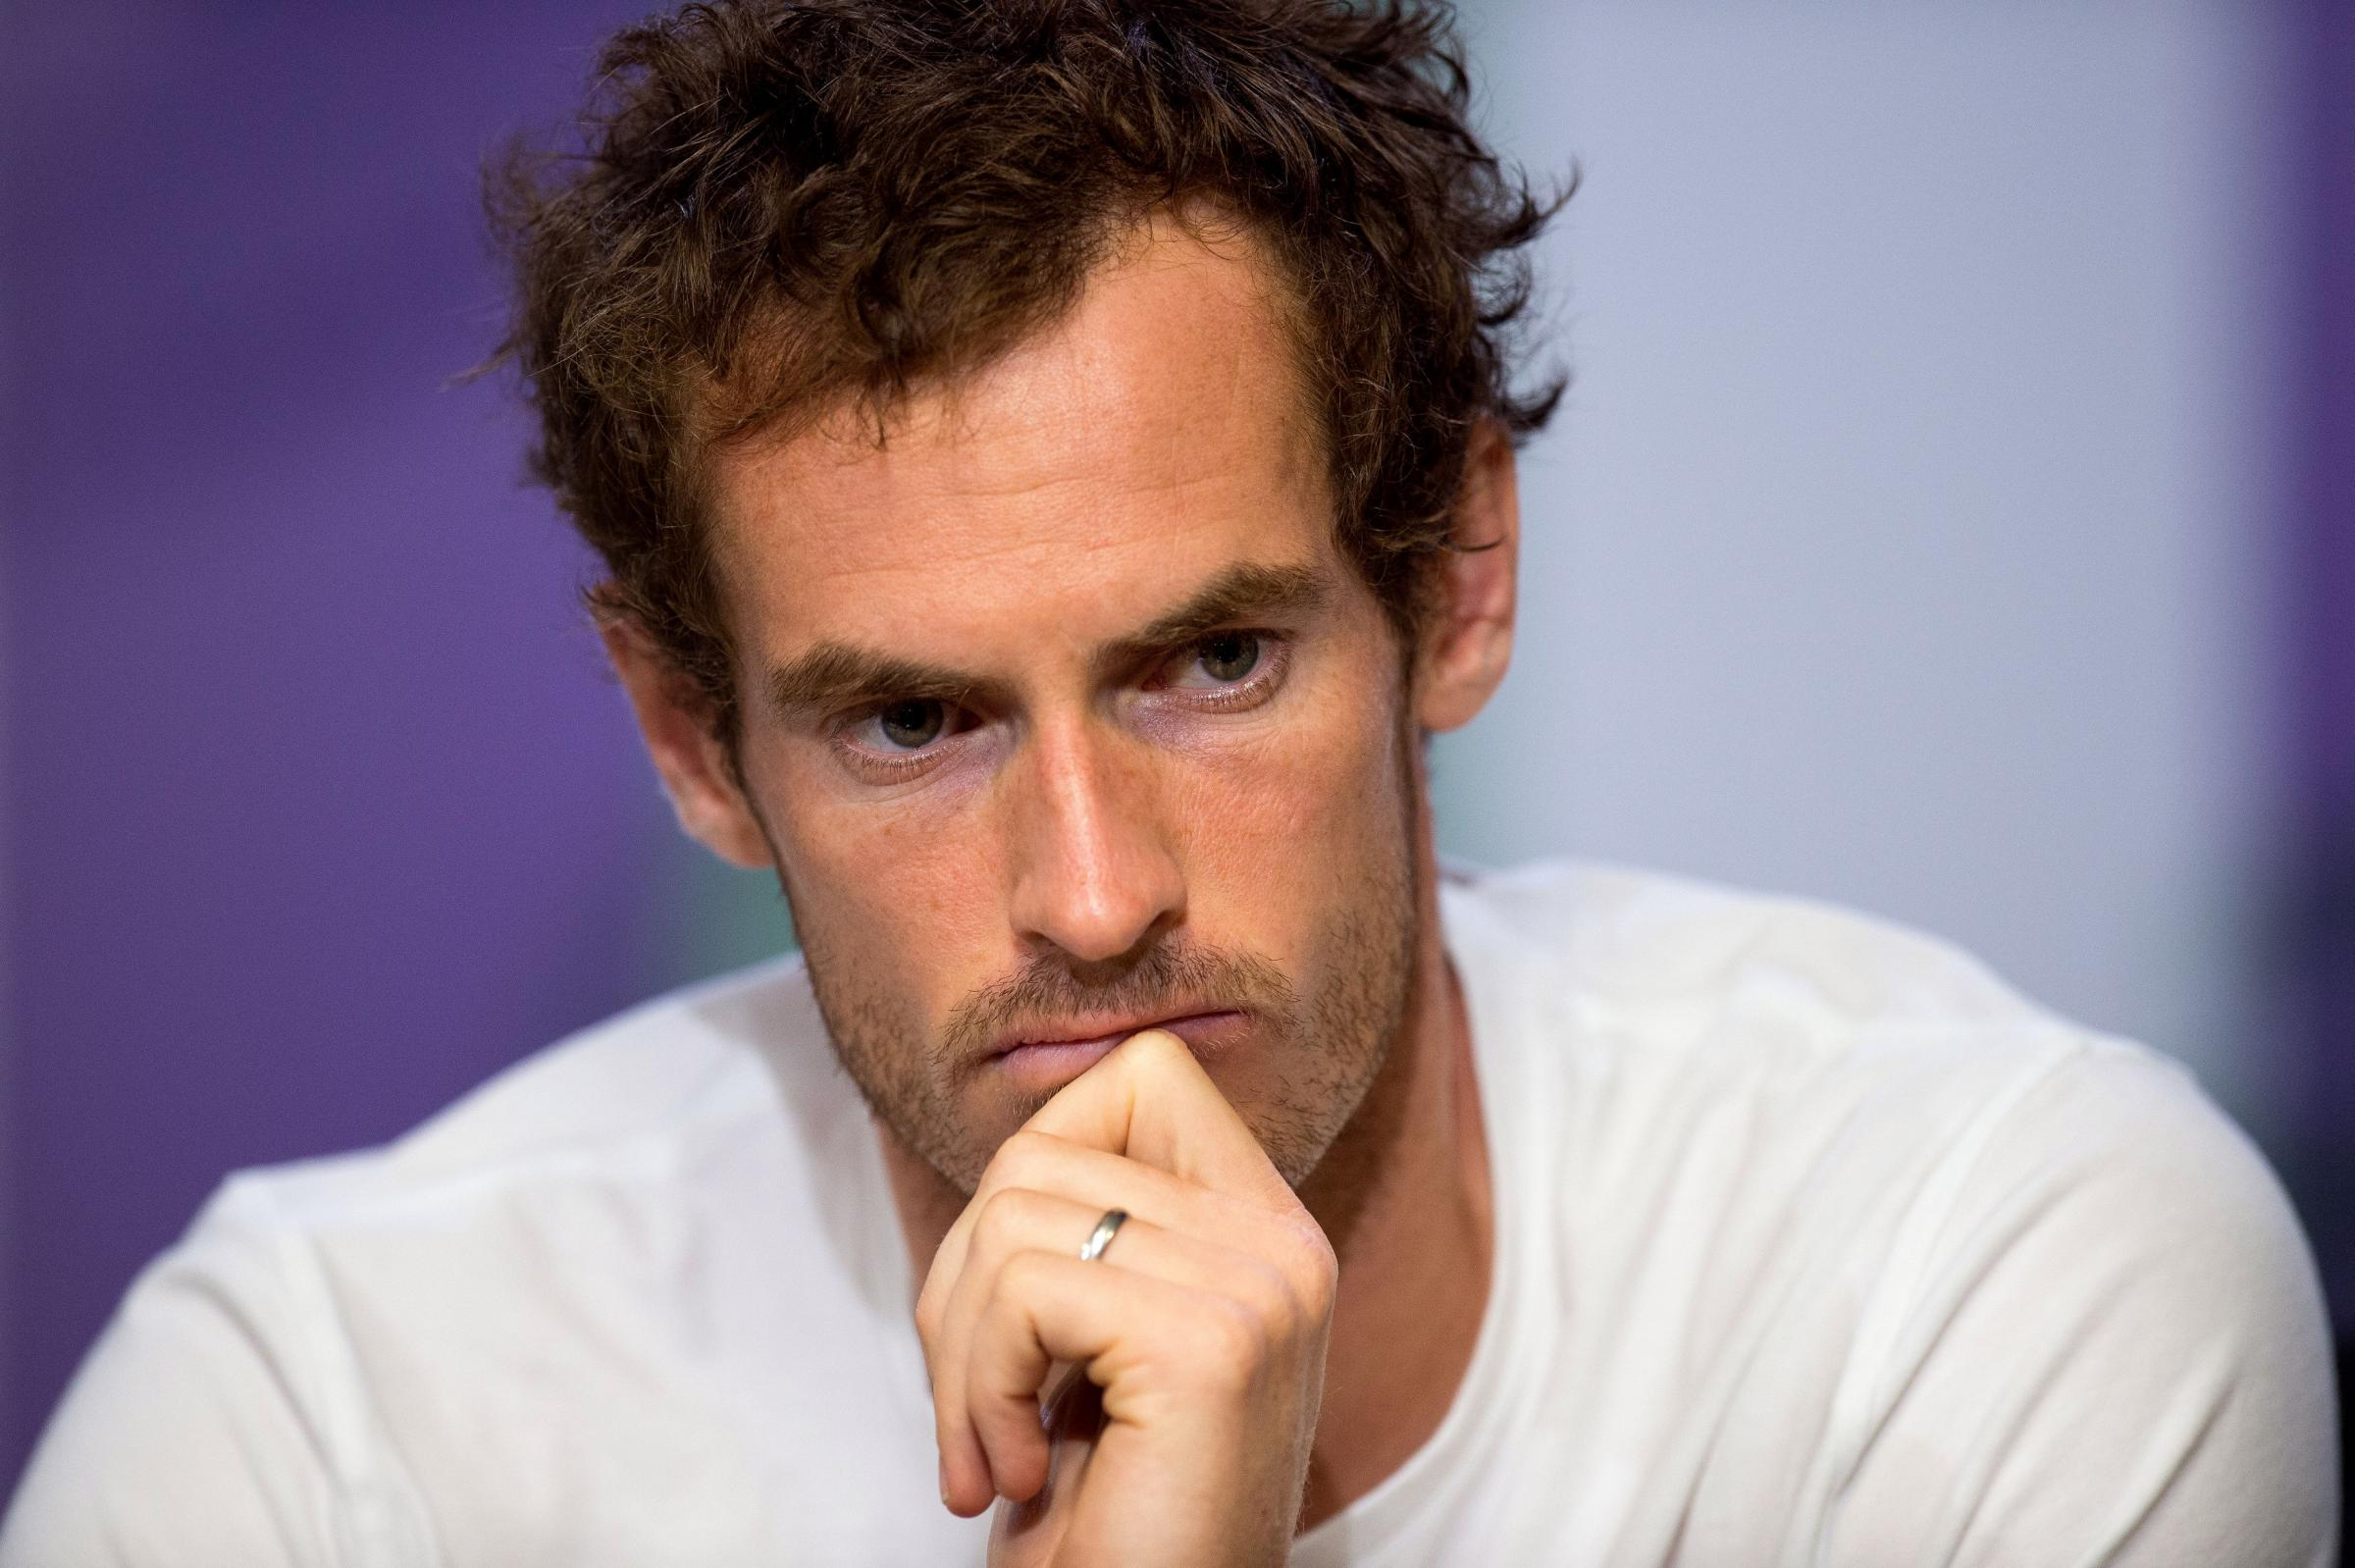 Andy Murray's post on social media appeared to be bracing his supporters for the worst